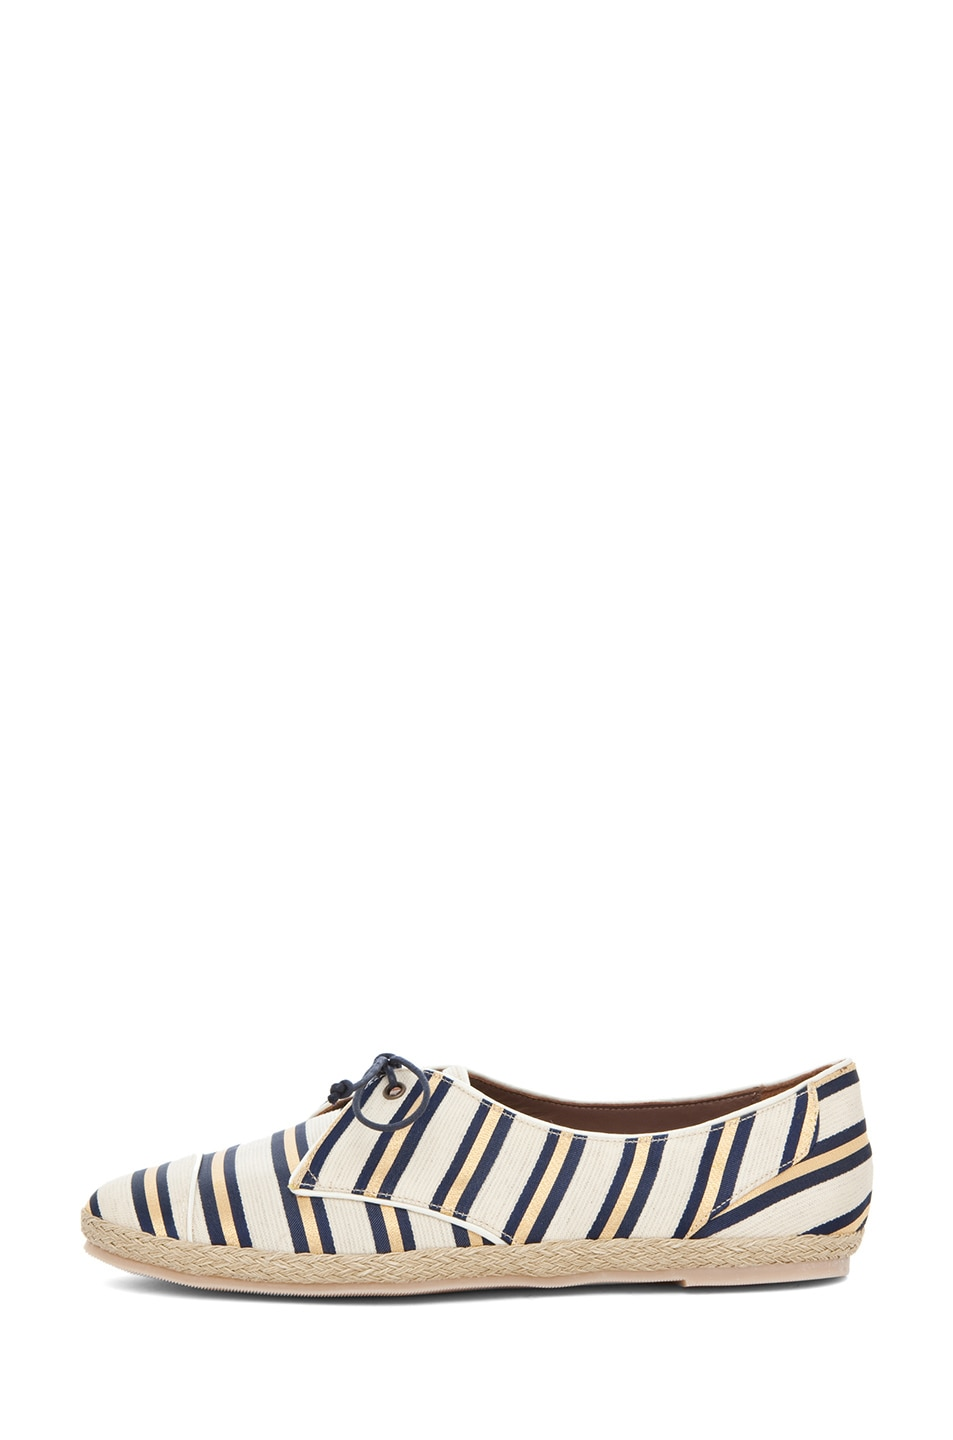 Image 1 of Tabitha Simmons Dolly Shiny-Canvas Cricket Stripe Flats in Gold & Navy